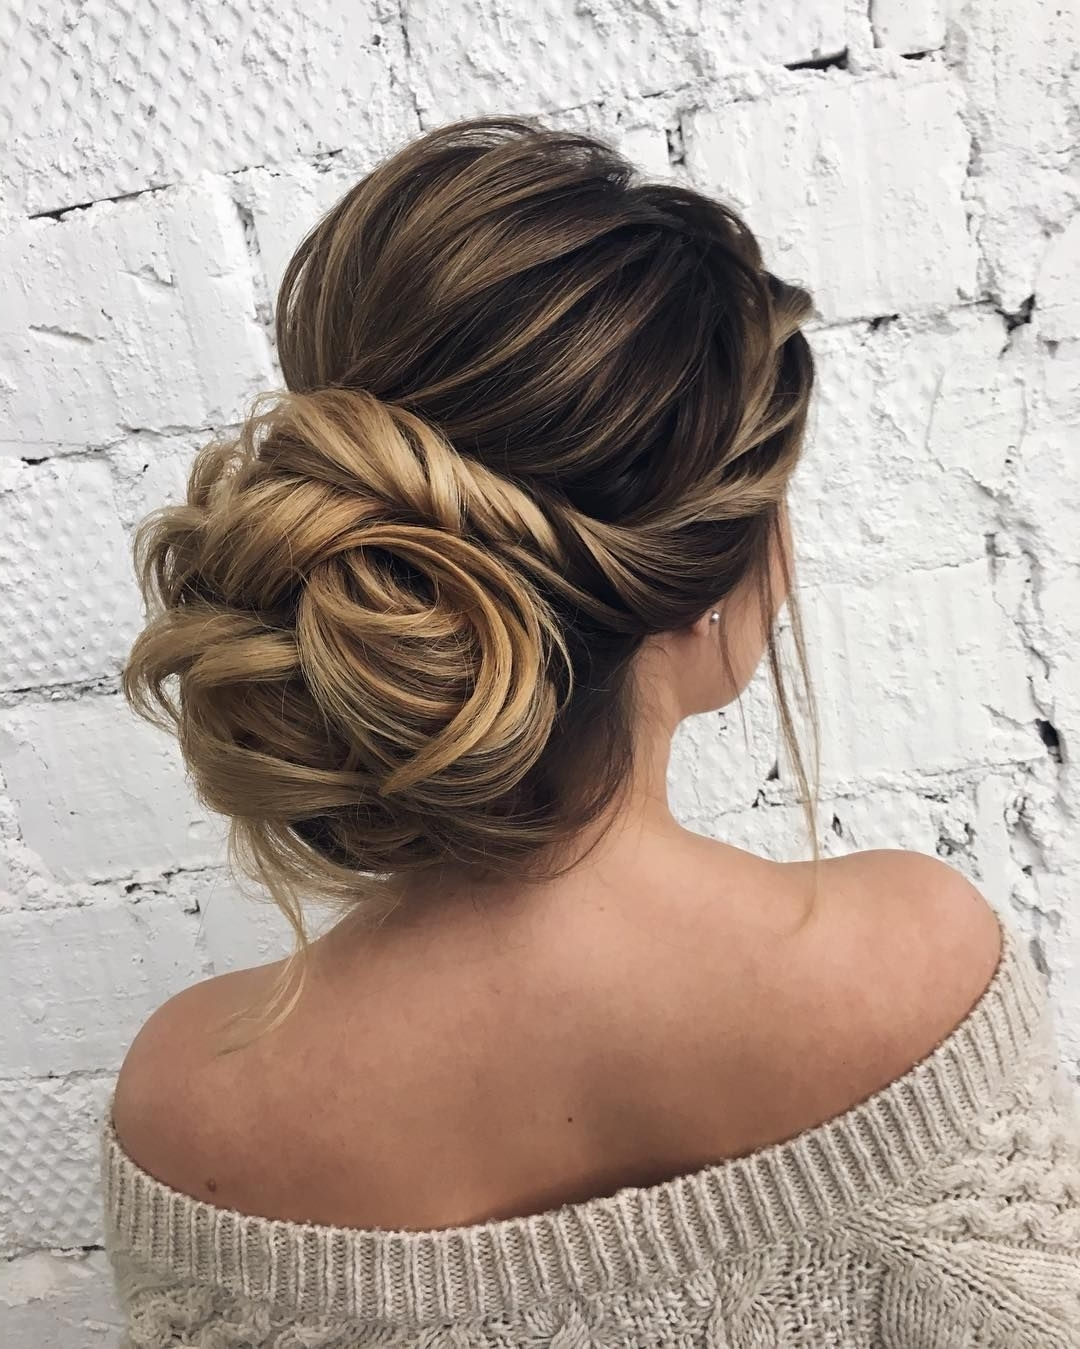 Top 20 Fabulous Updo Wedding Hairstyles: 2019 Popular Updo Hairstyles For Strapless Dress